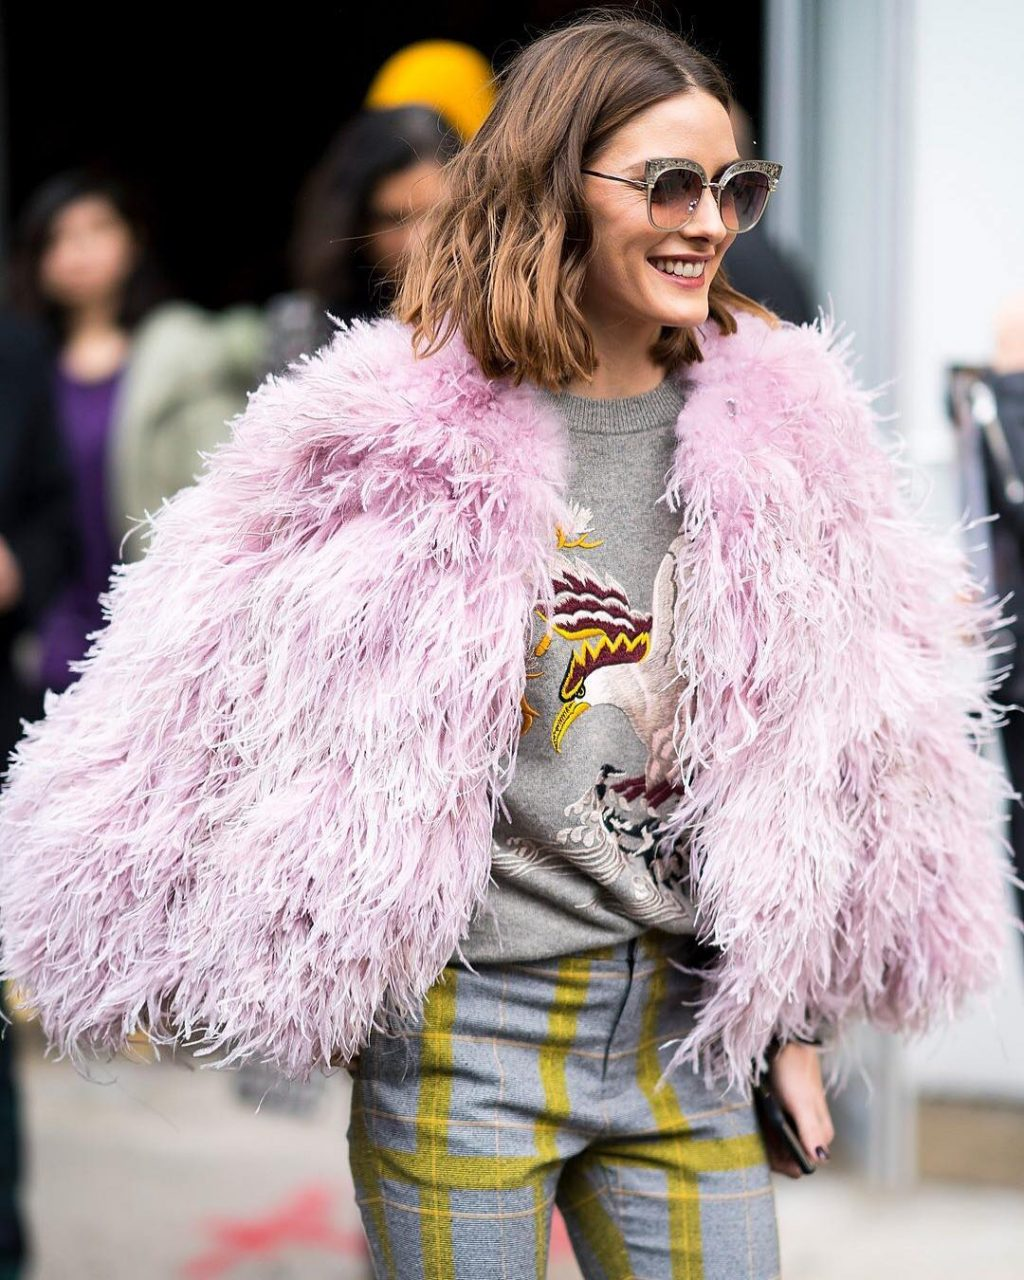 Pink Plumage and Patent Pants – What Caught Our Eye on Instagram This Week